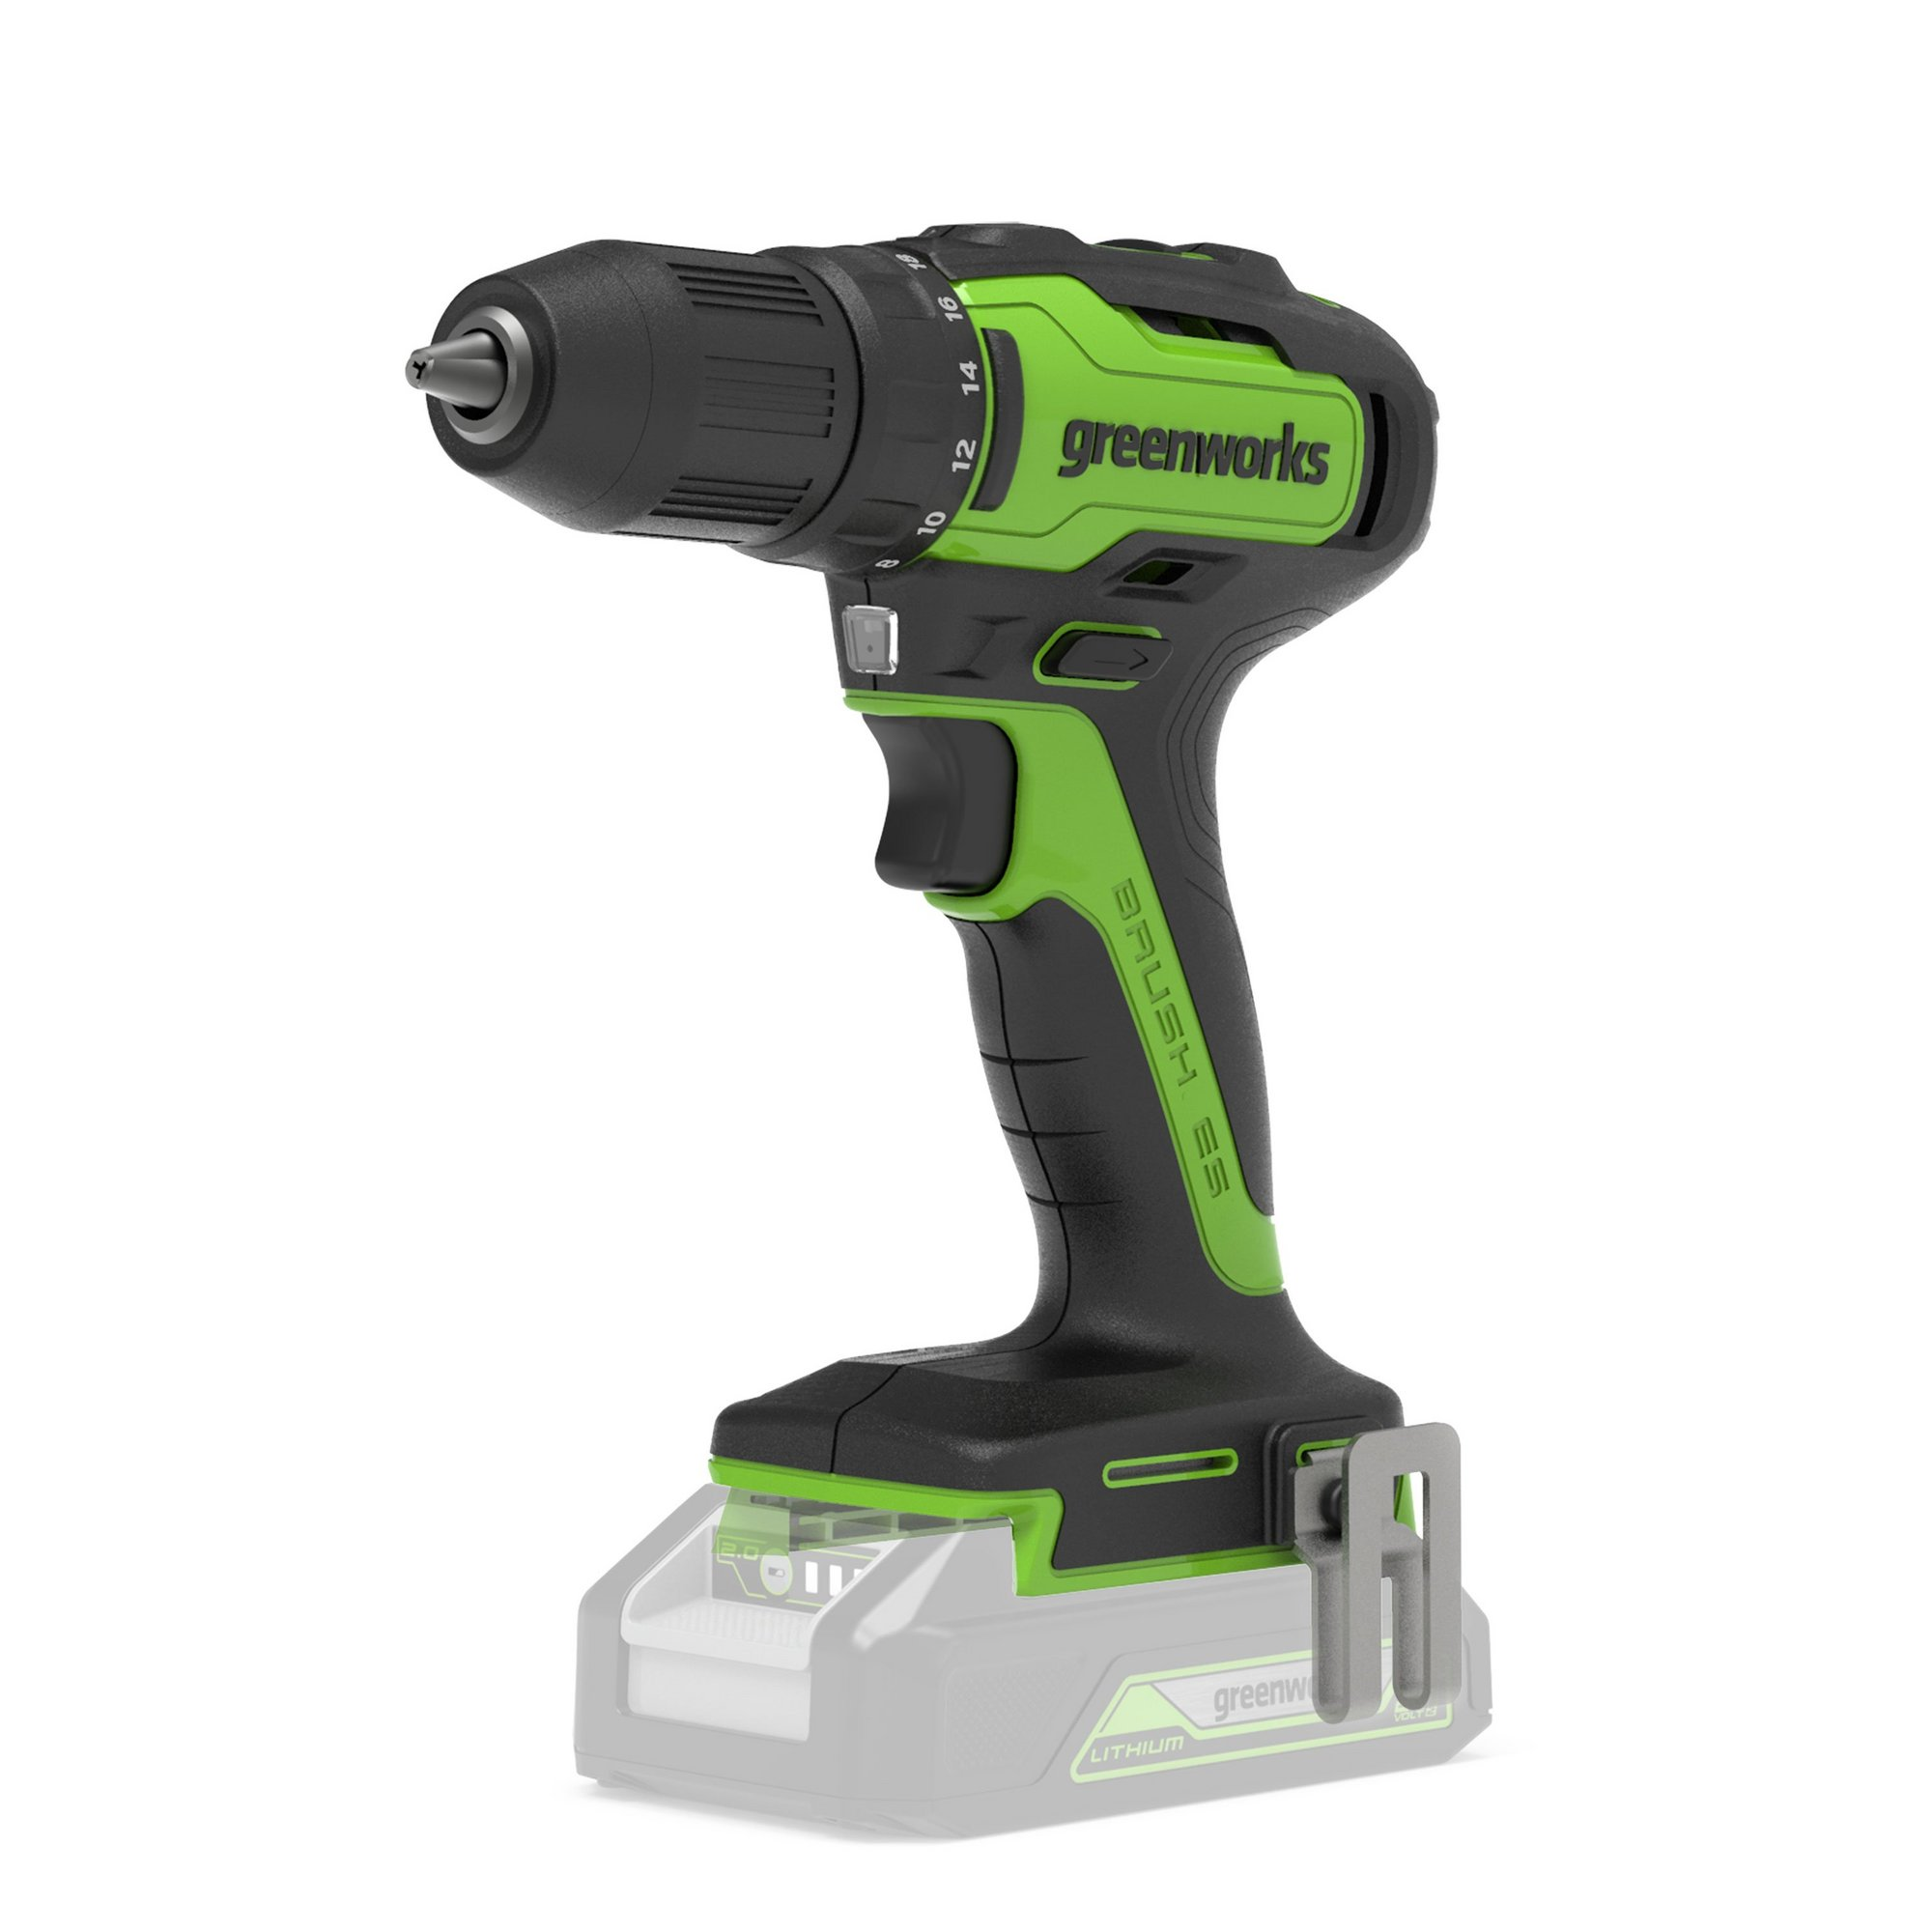 Image of Greenworks 24V Brushless Drill Driver 35Nm (Tool Only)